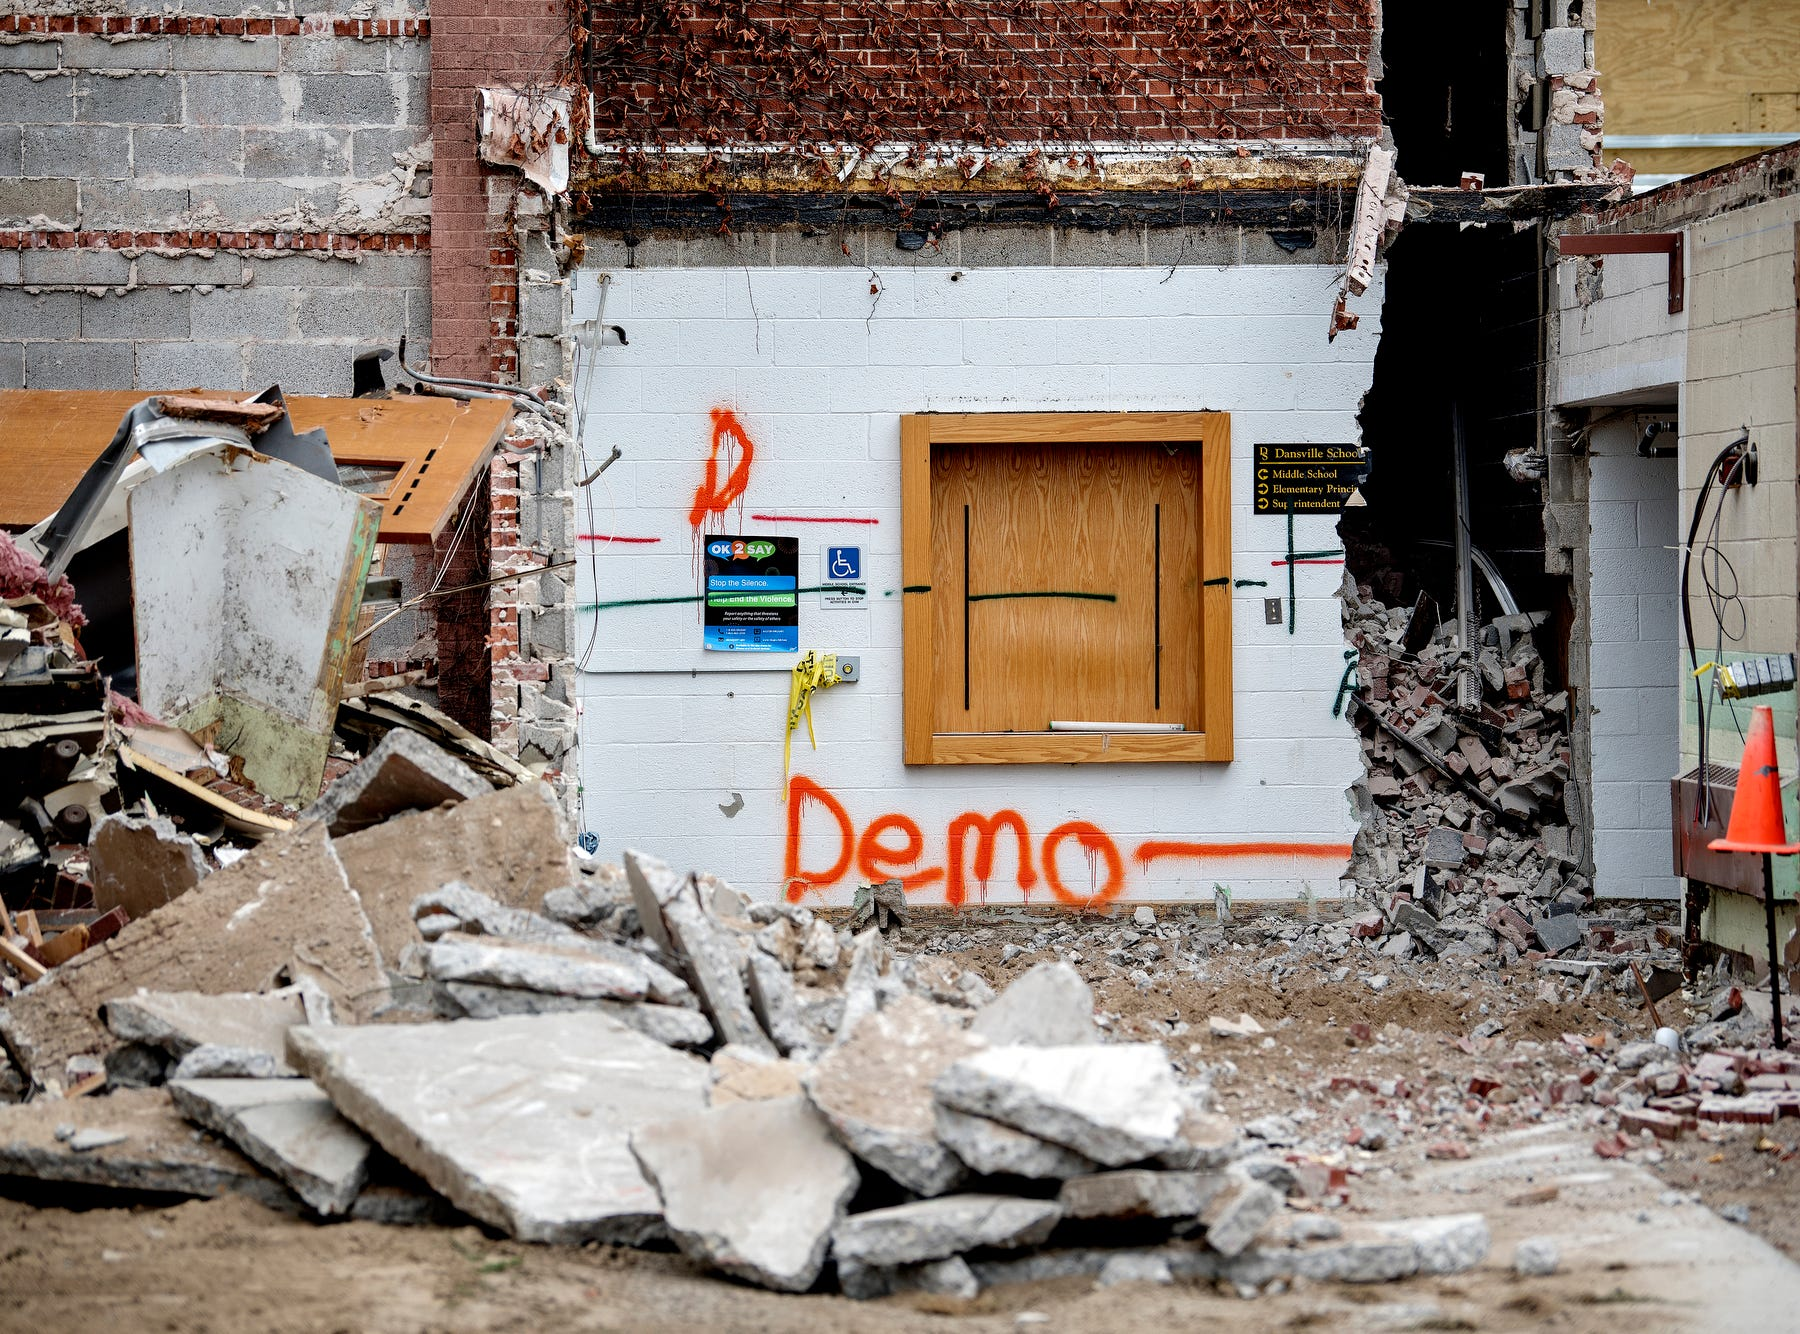 An inside area is exposed as crews begin to demolish the old Dansville Middle School on Monday, July 23, 2018, in Dansville. The building is being razed as part of the district's 2016 millage, which is funding the demolition as well as the construction of a new high school.